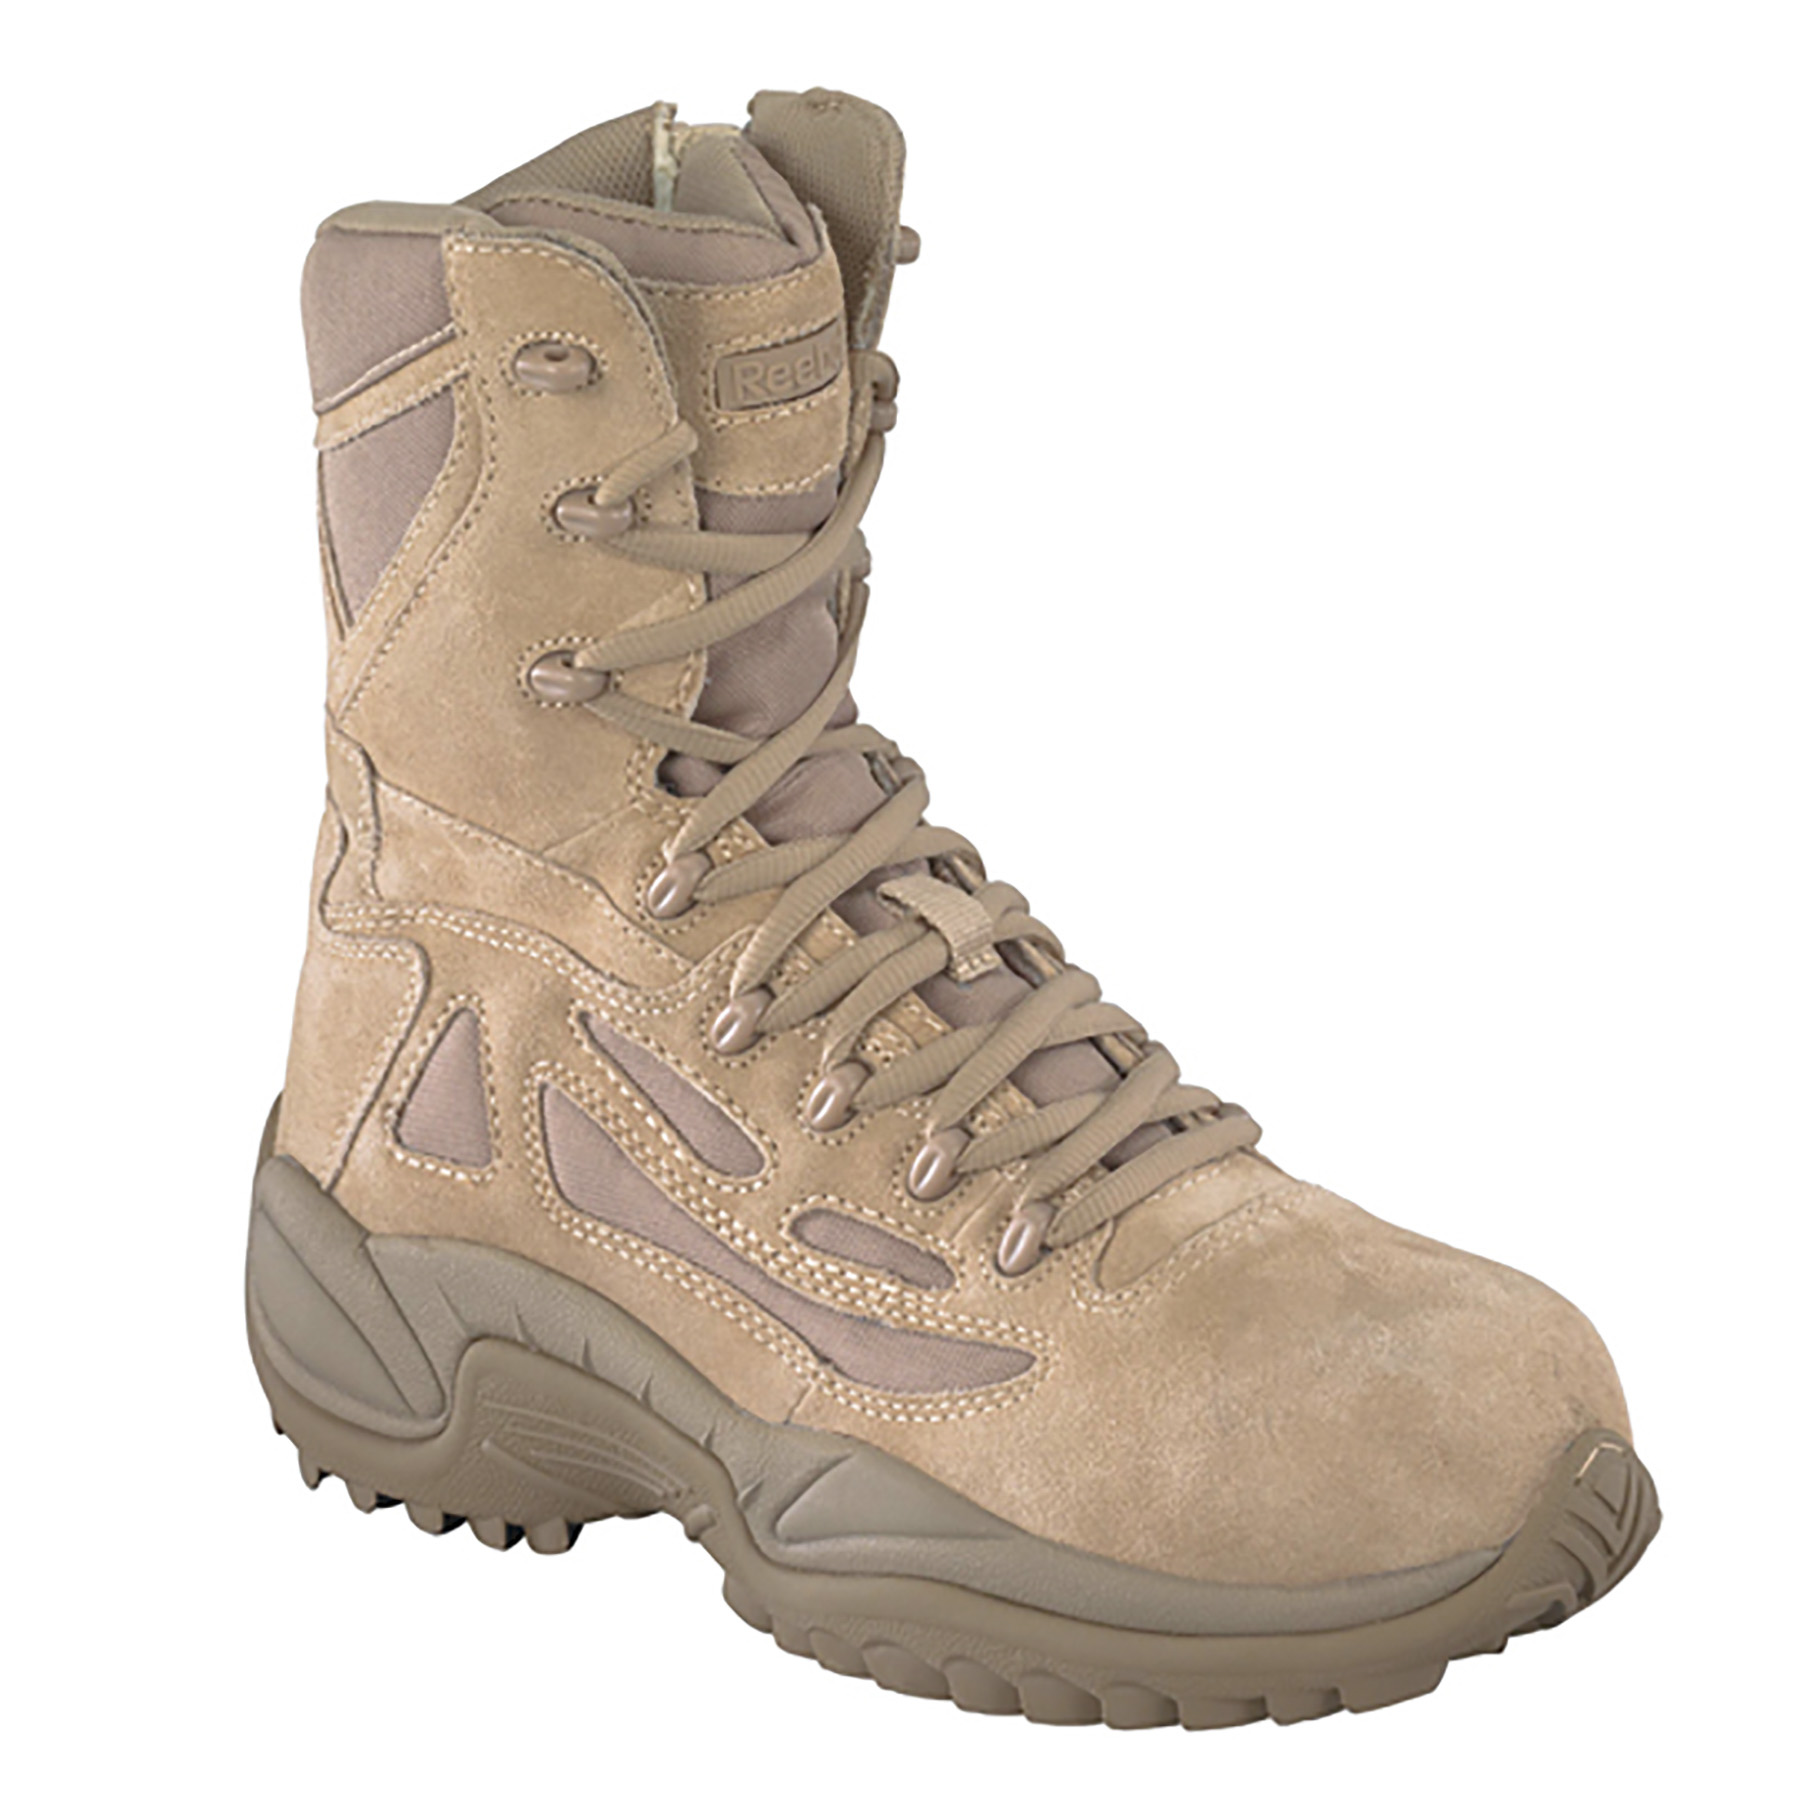 Womens Reebok Desert Tan Soft Toe Boots